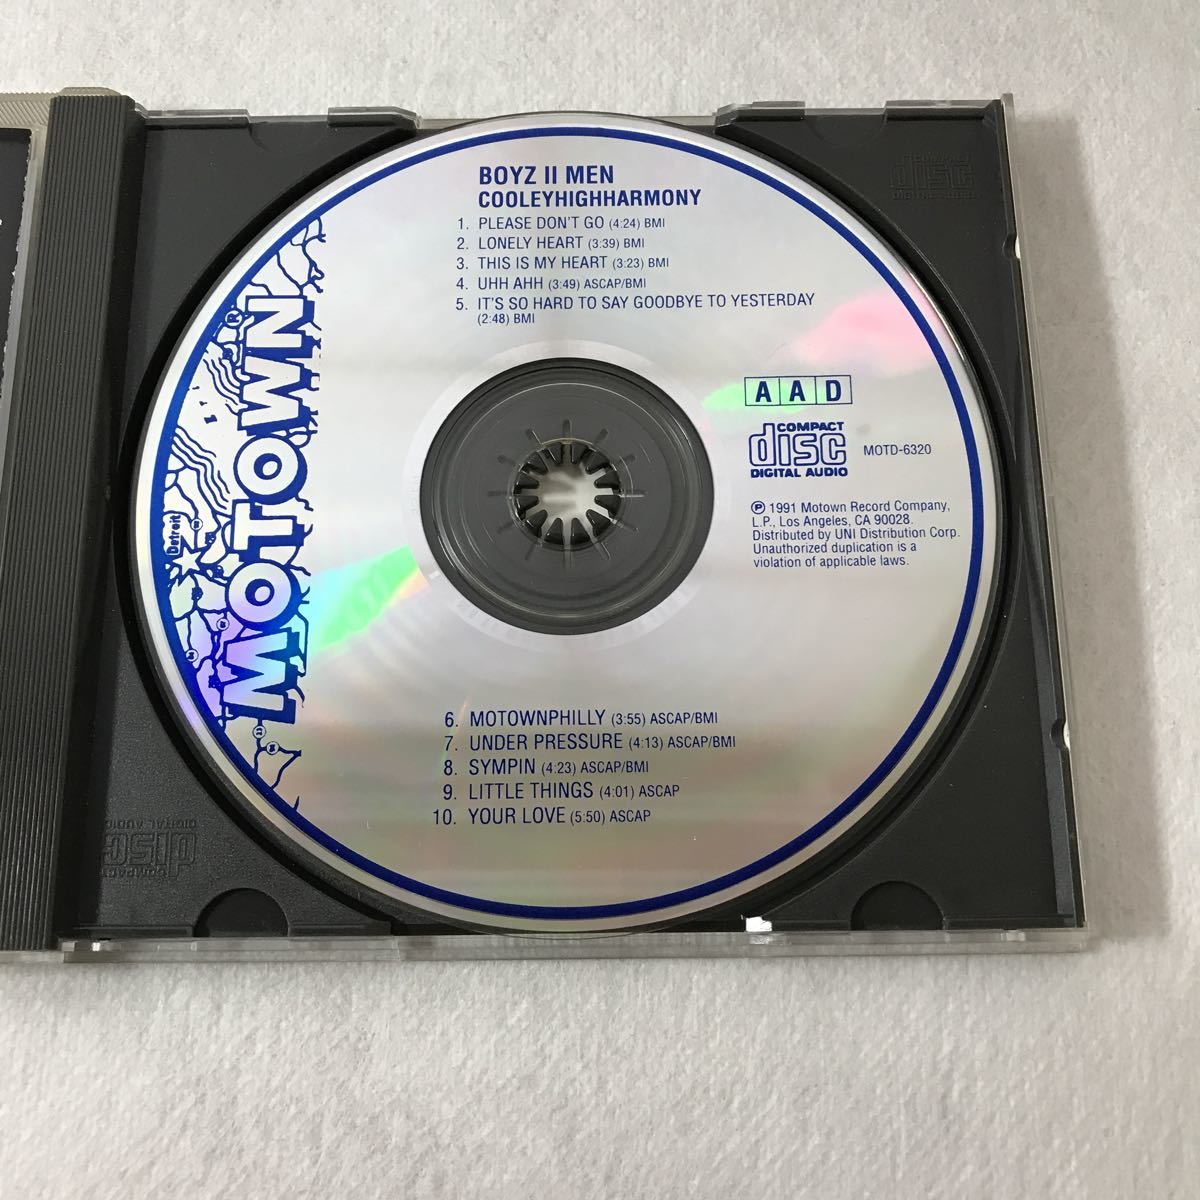 CD Cooleyhighharmony Boys II Men